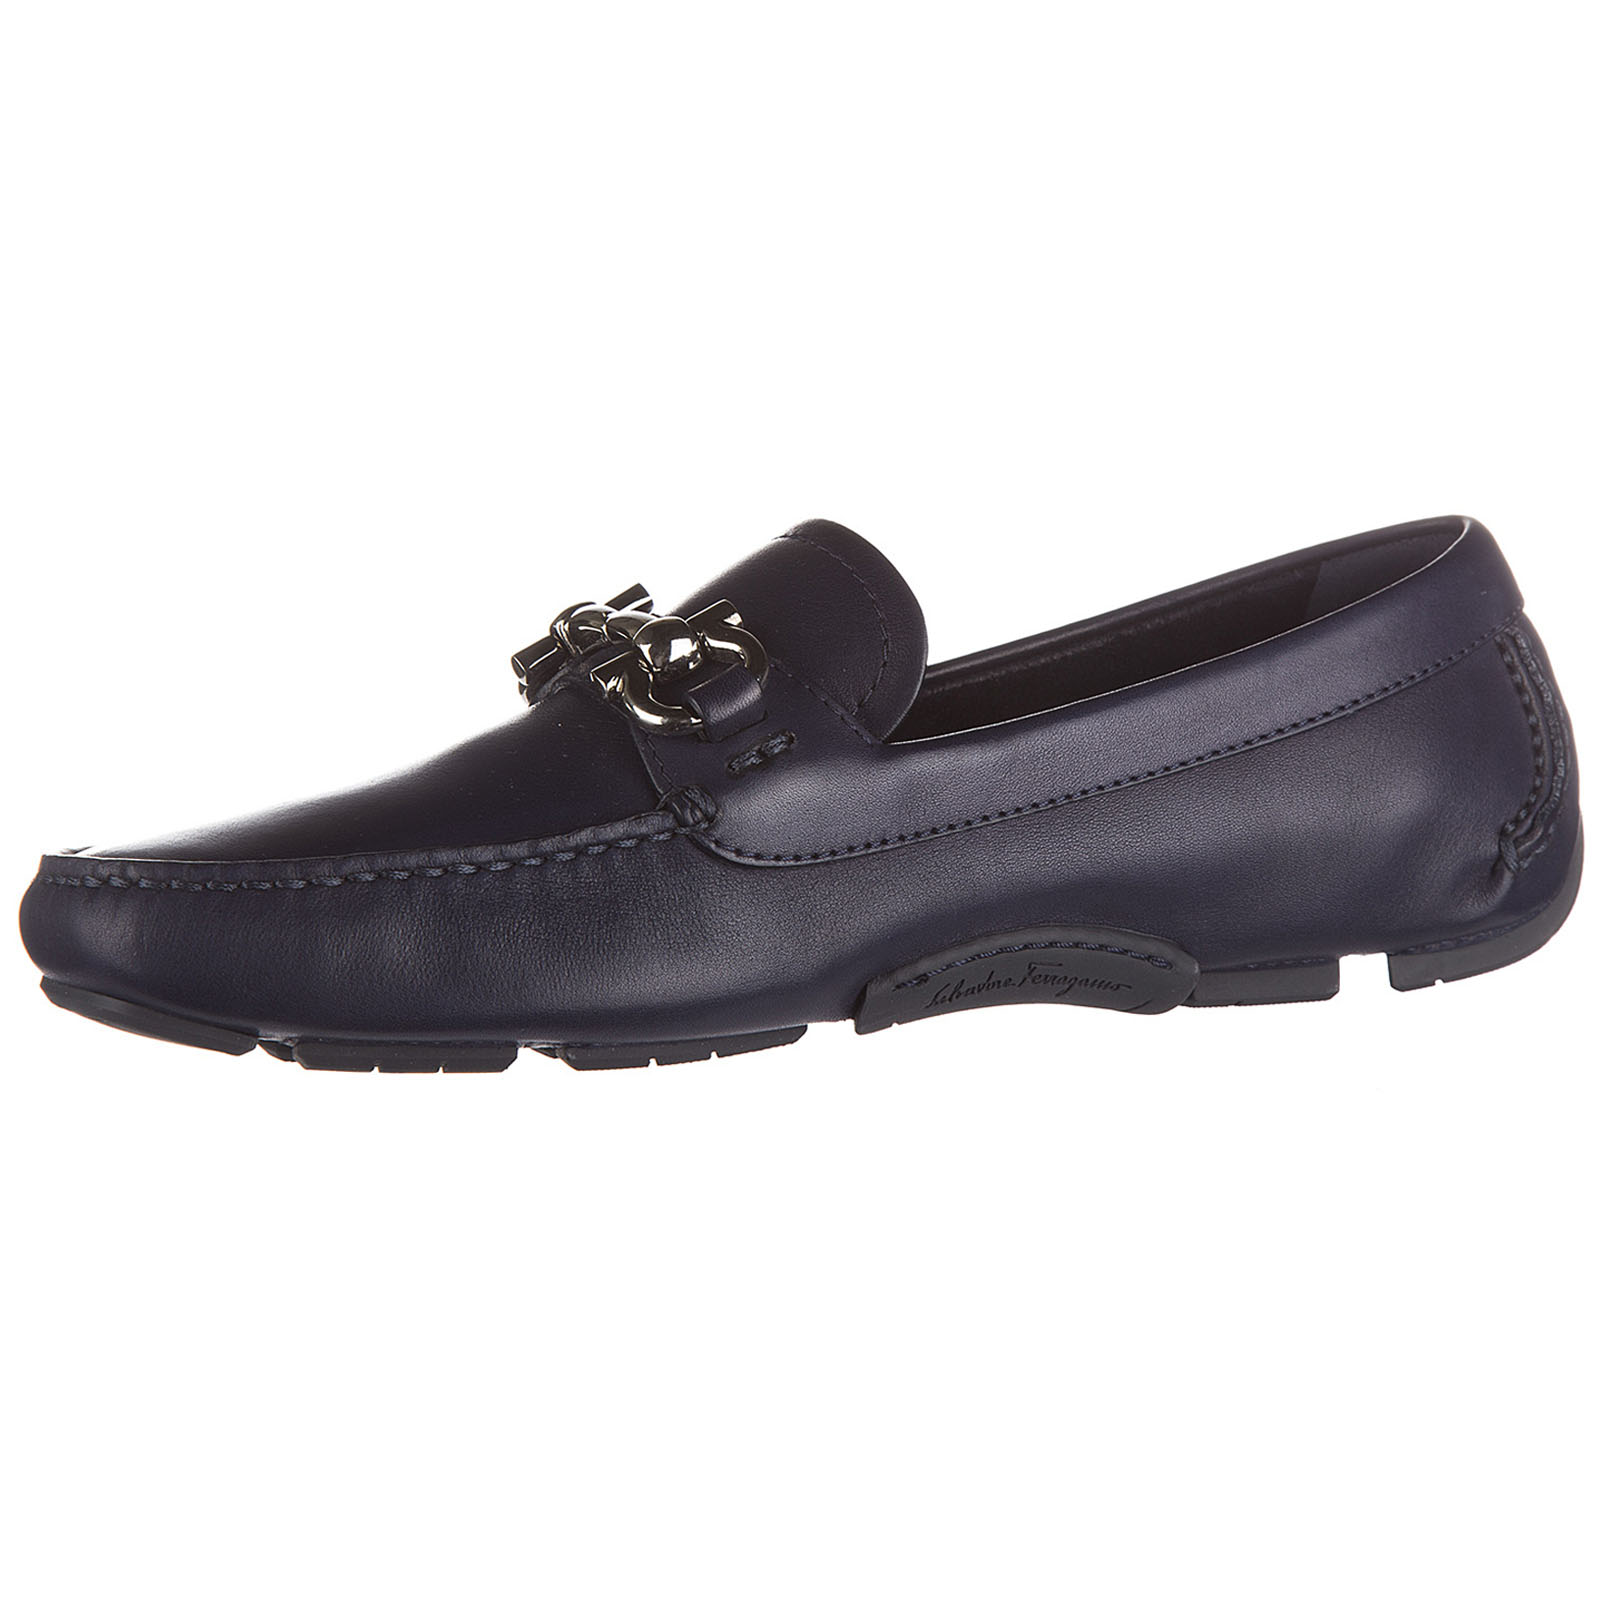 Women's leather loafers moccasins  parigi